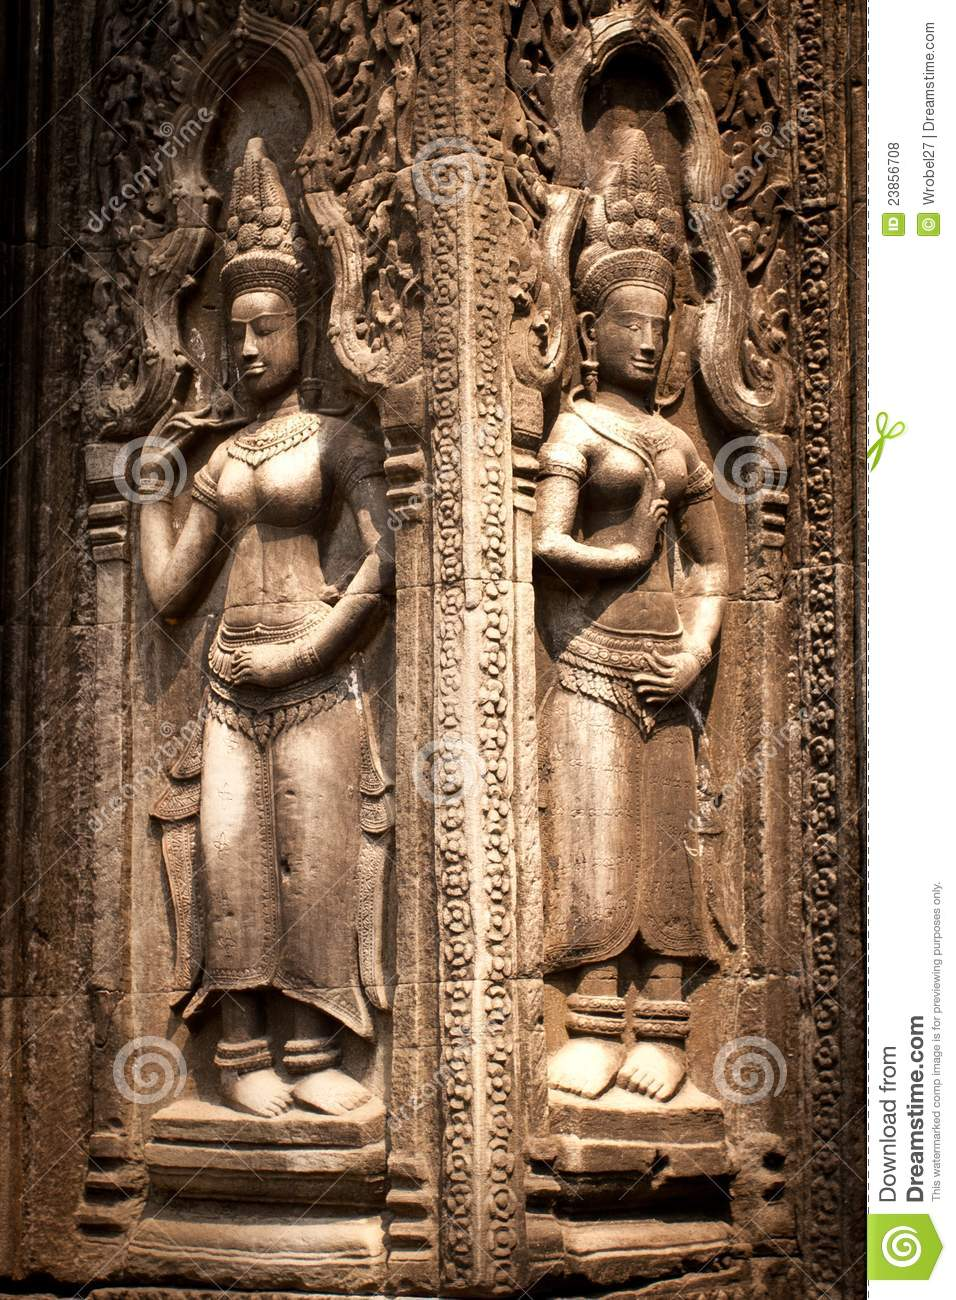 Carvings on the wall angkor wat cambodia royalty free